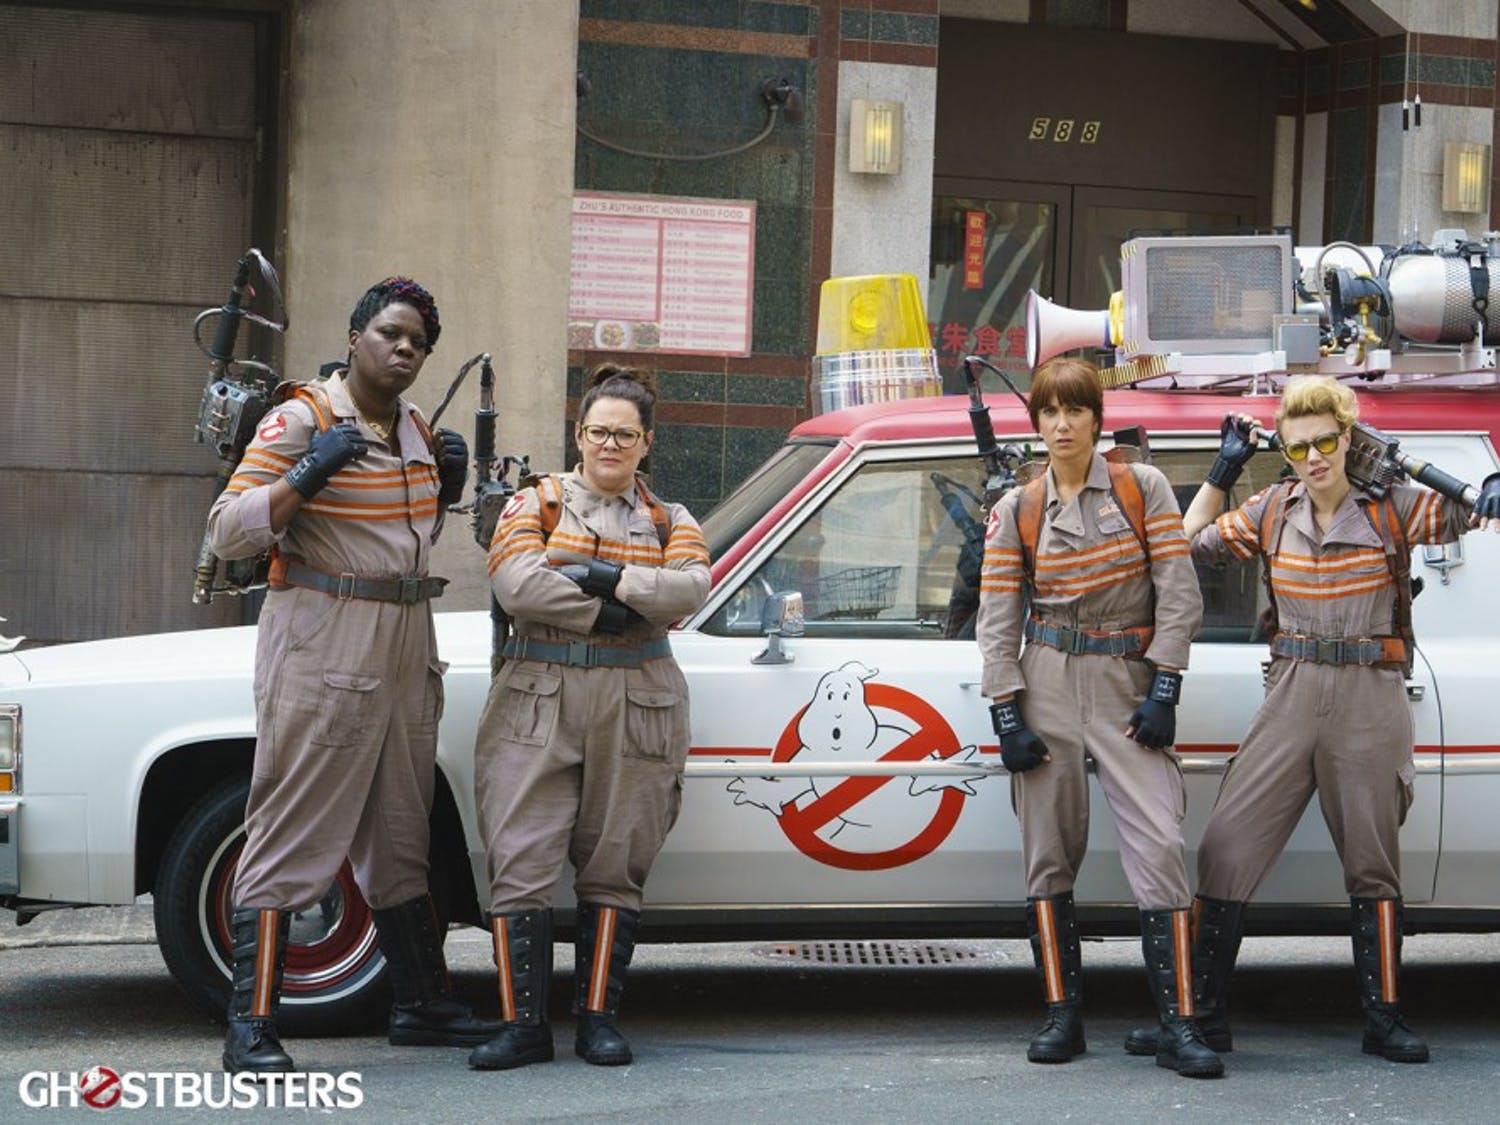 """The women of the """"Ghostbusters"""" reboot had excellent chemistry, proving that comedy by women can be done excellently and with ingenuity."""